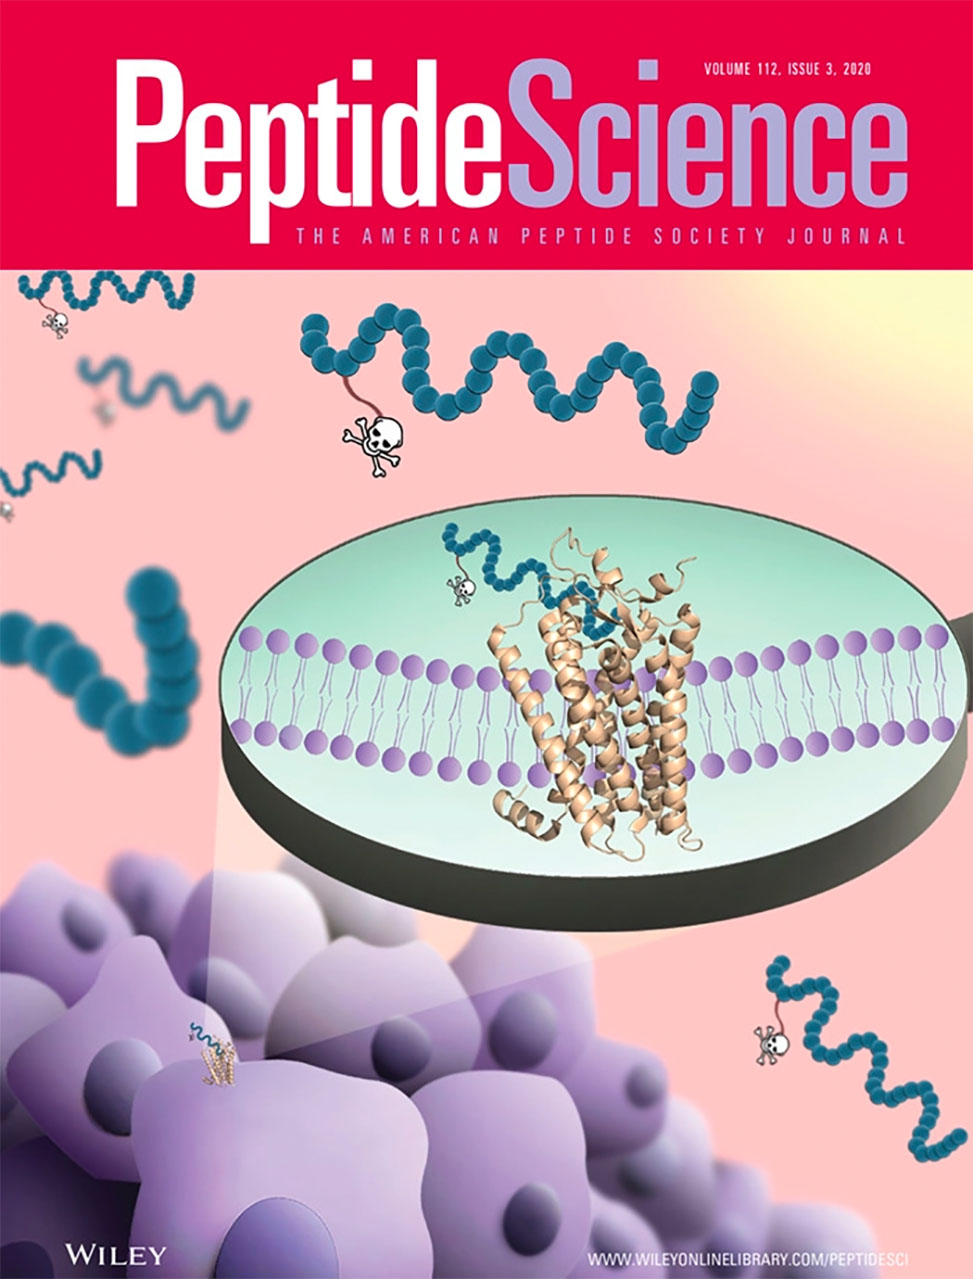 Volume 112, Issue 3, May 2020